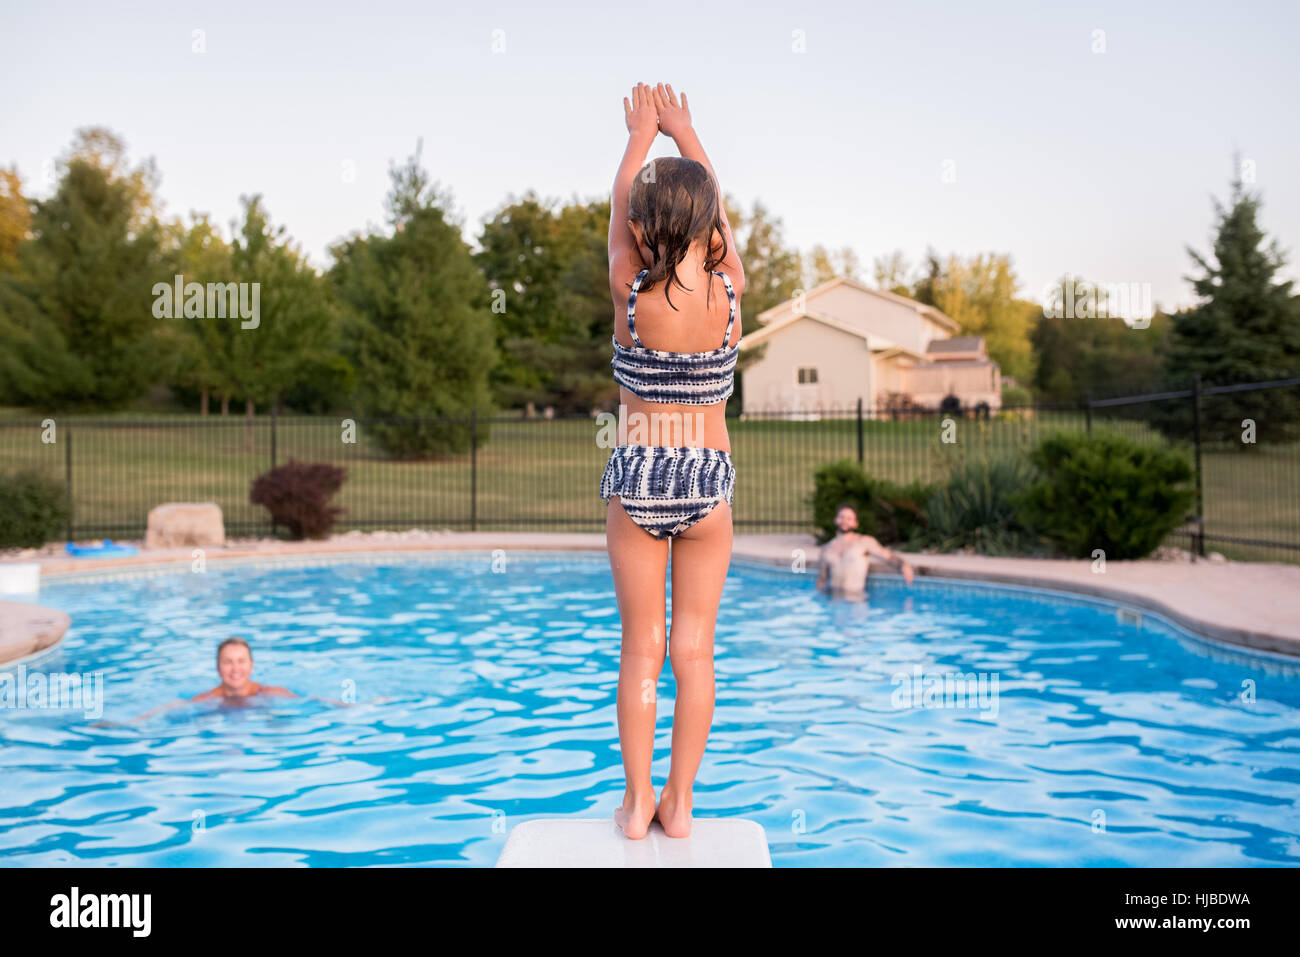 Young Girl Preparing To Dive Into Swimming Pool Father